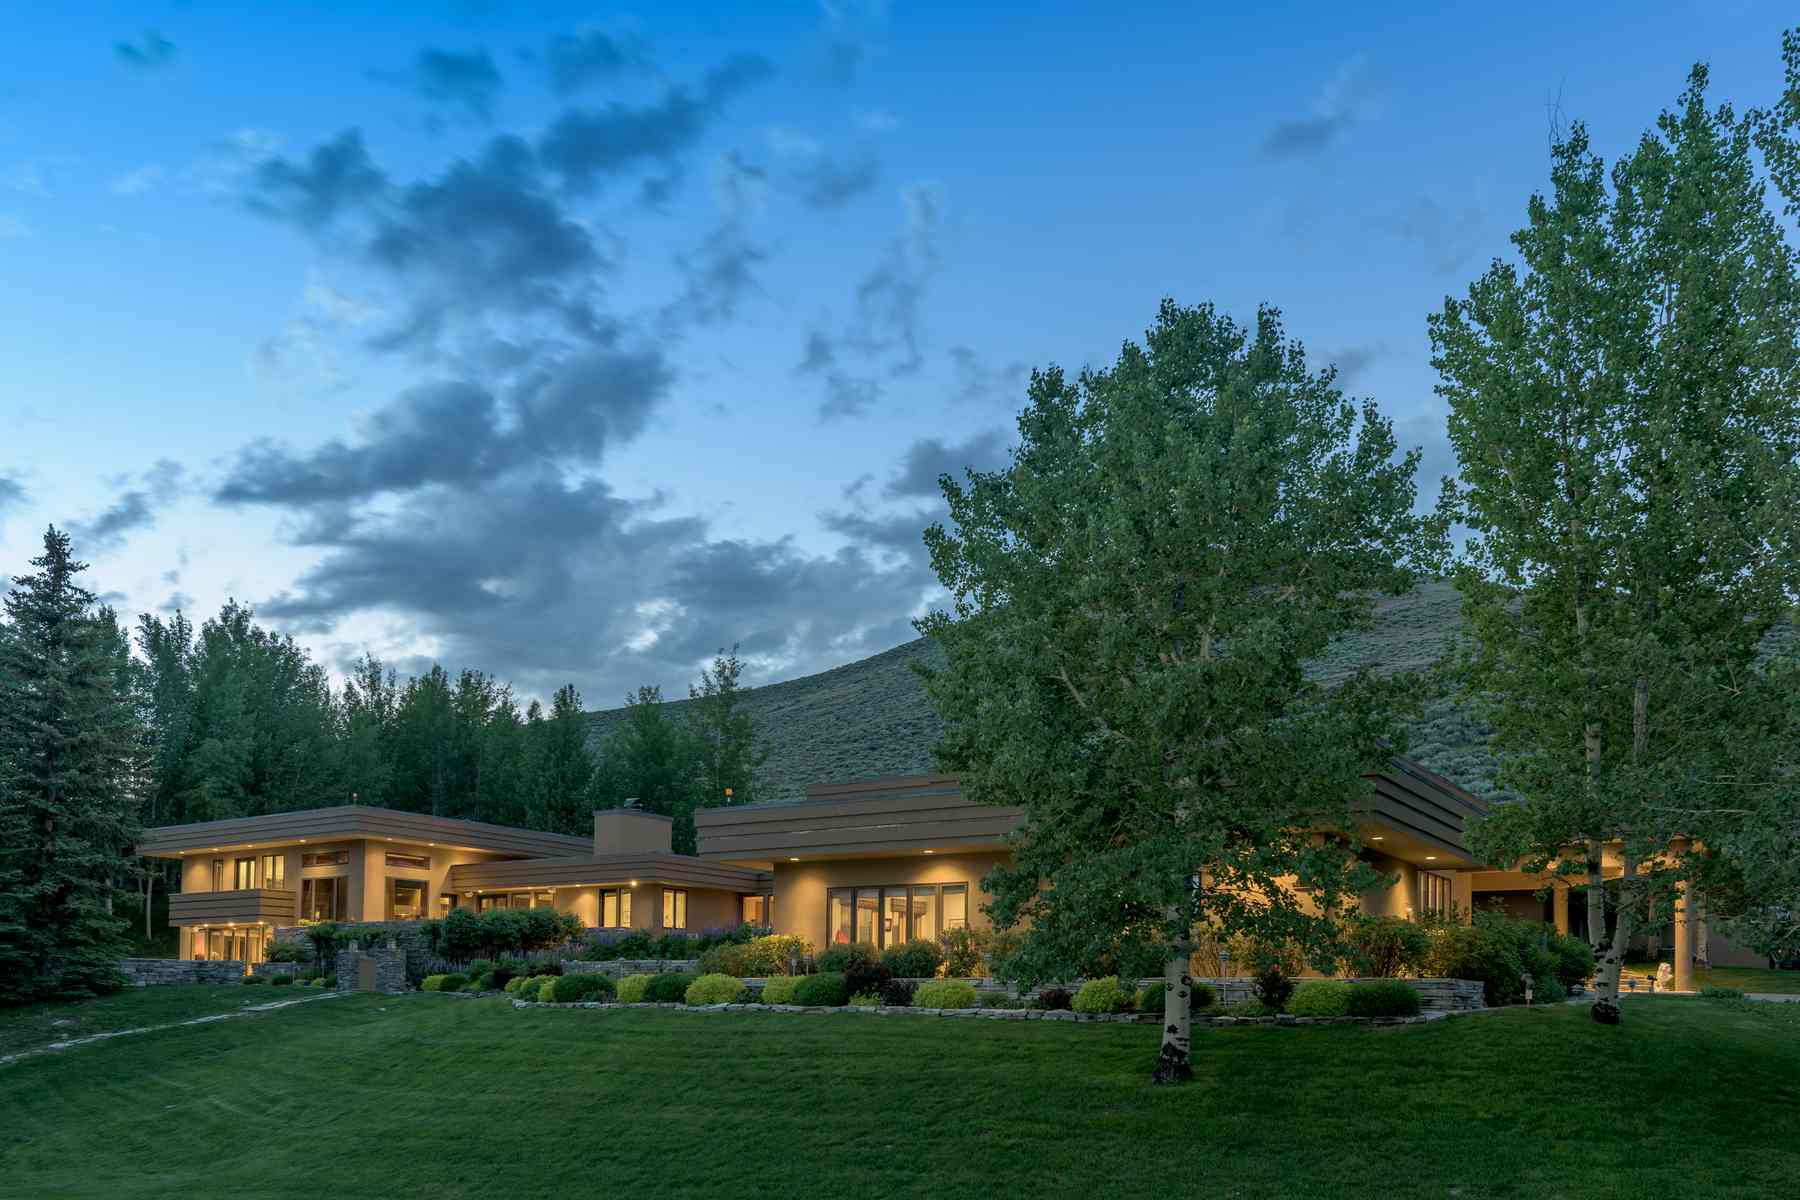 Single Family Home for Sale at Spectacular Elevated Setting 455 N. Bigwood Drive Ketchum, 83340 United States